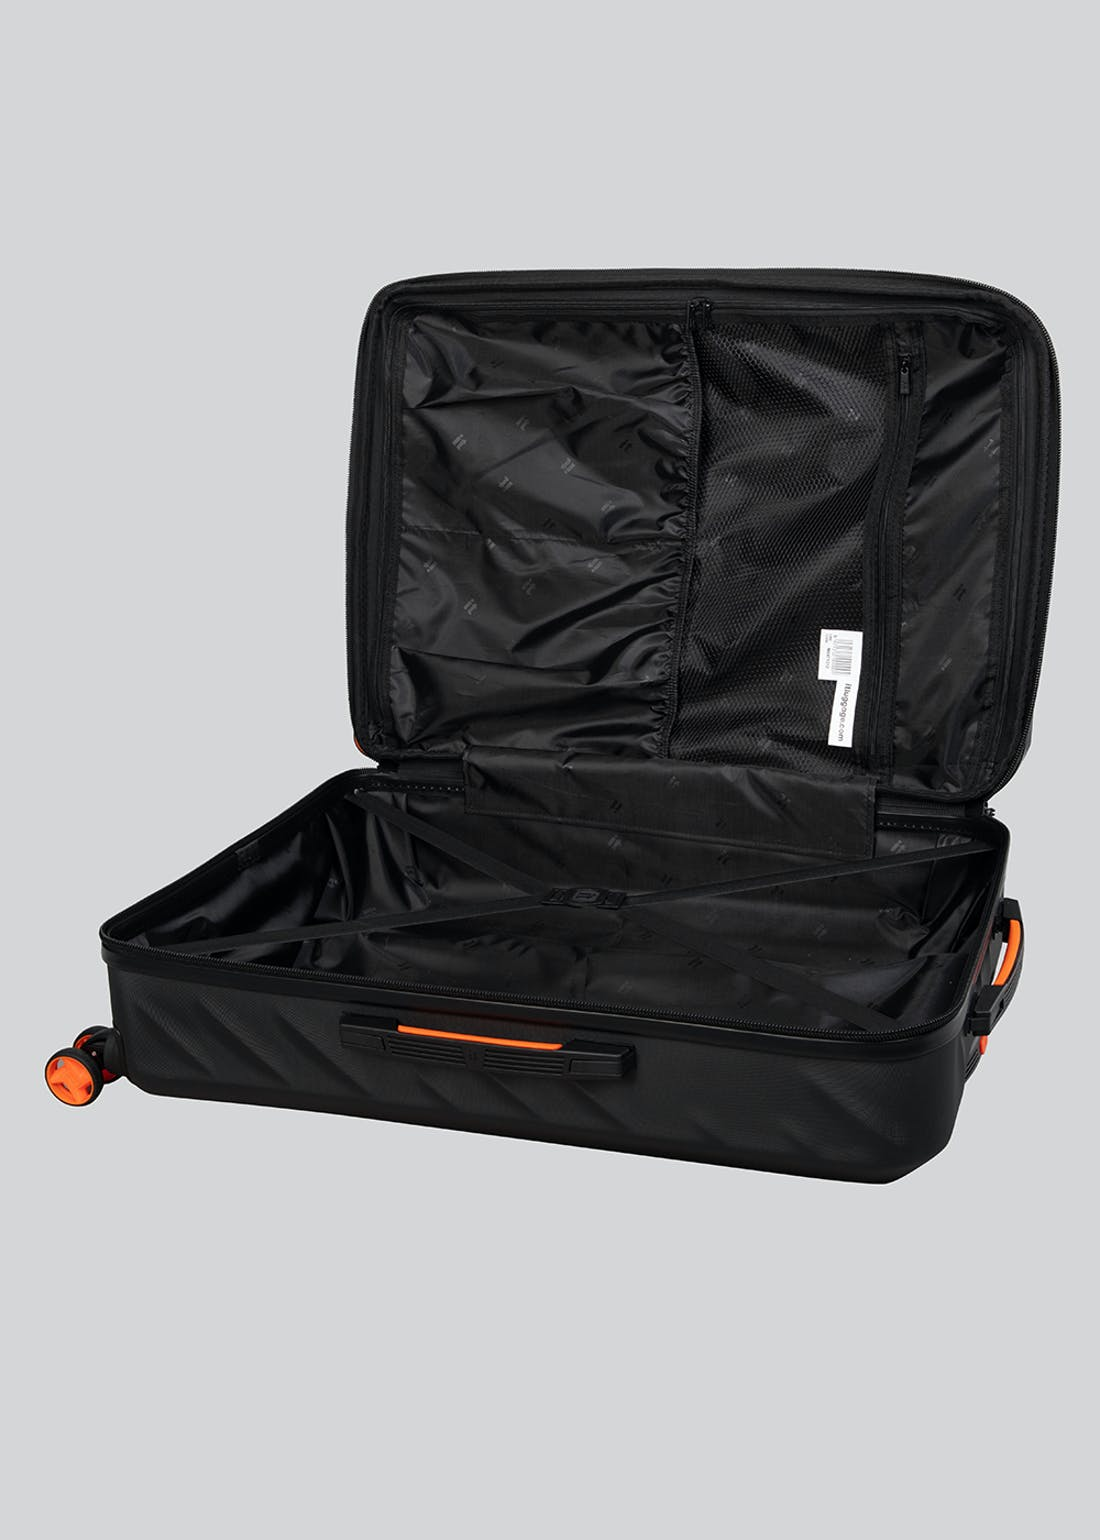 IT Luggage Elevate Suitcase